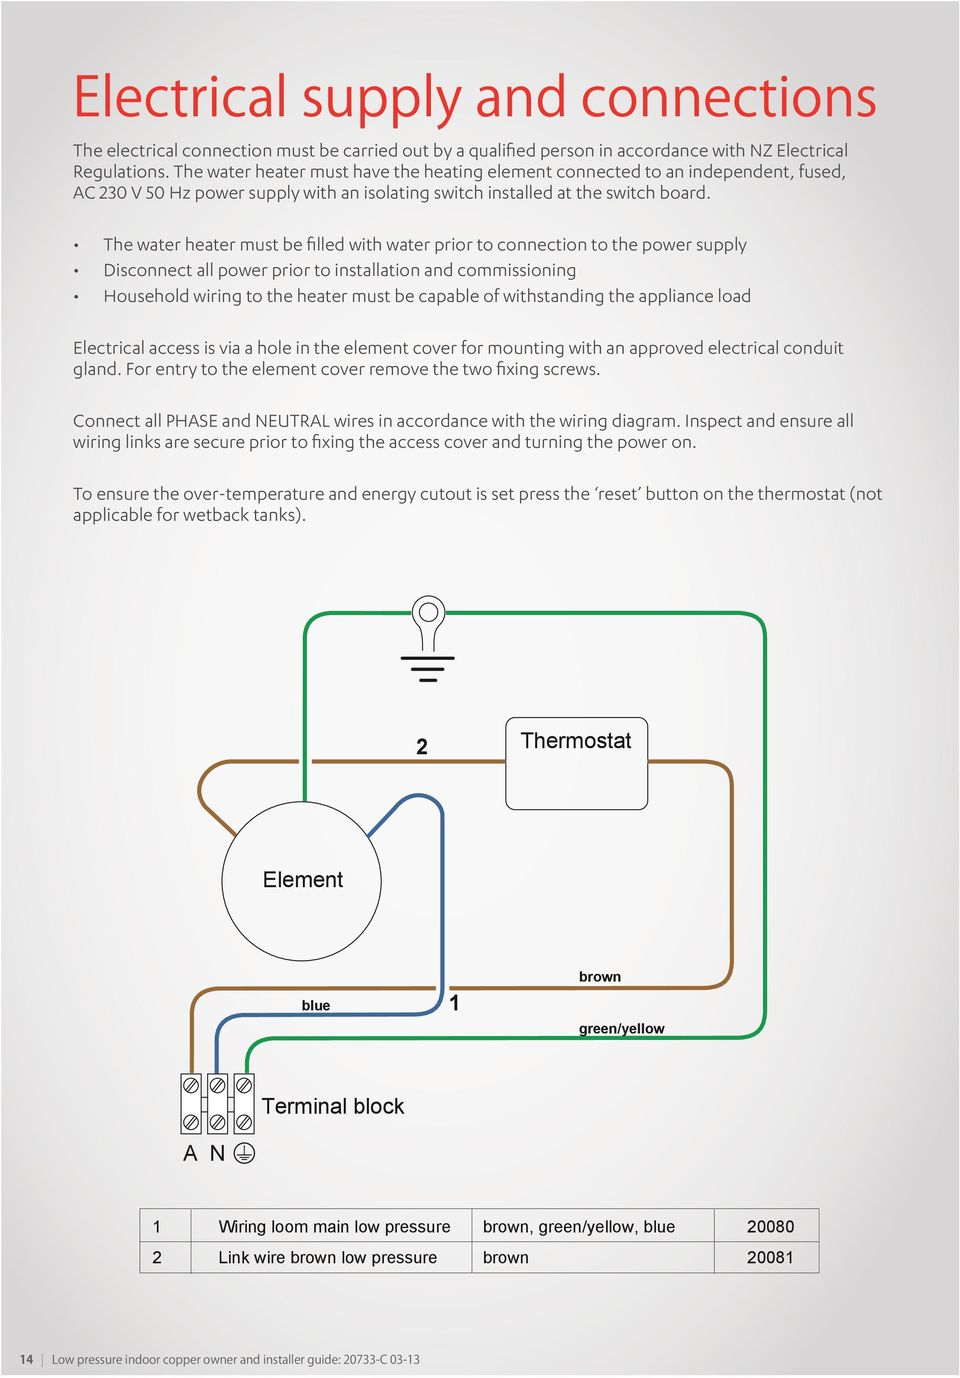 Low Pressure Indoor Copper Tanks Pdf Home Water Heater Electrical Wiring Diagrams The Must Be Filled With Prior To Connection Power Supply Disconnect